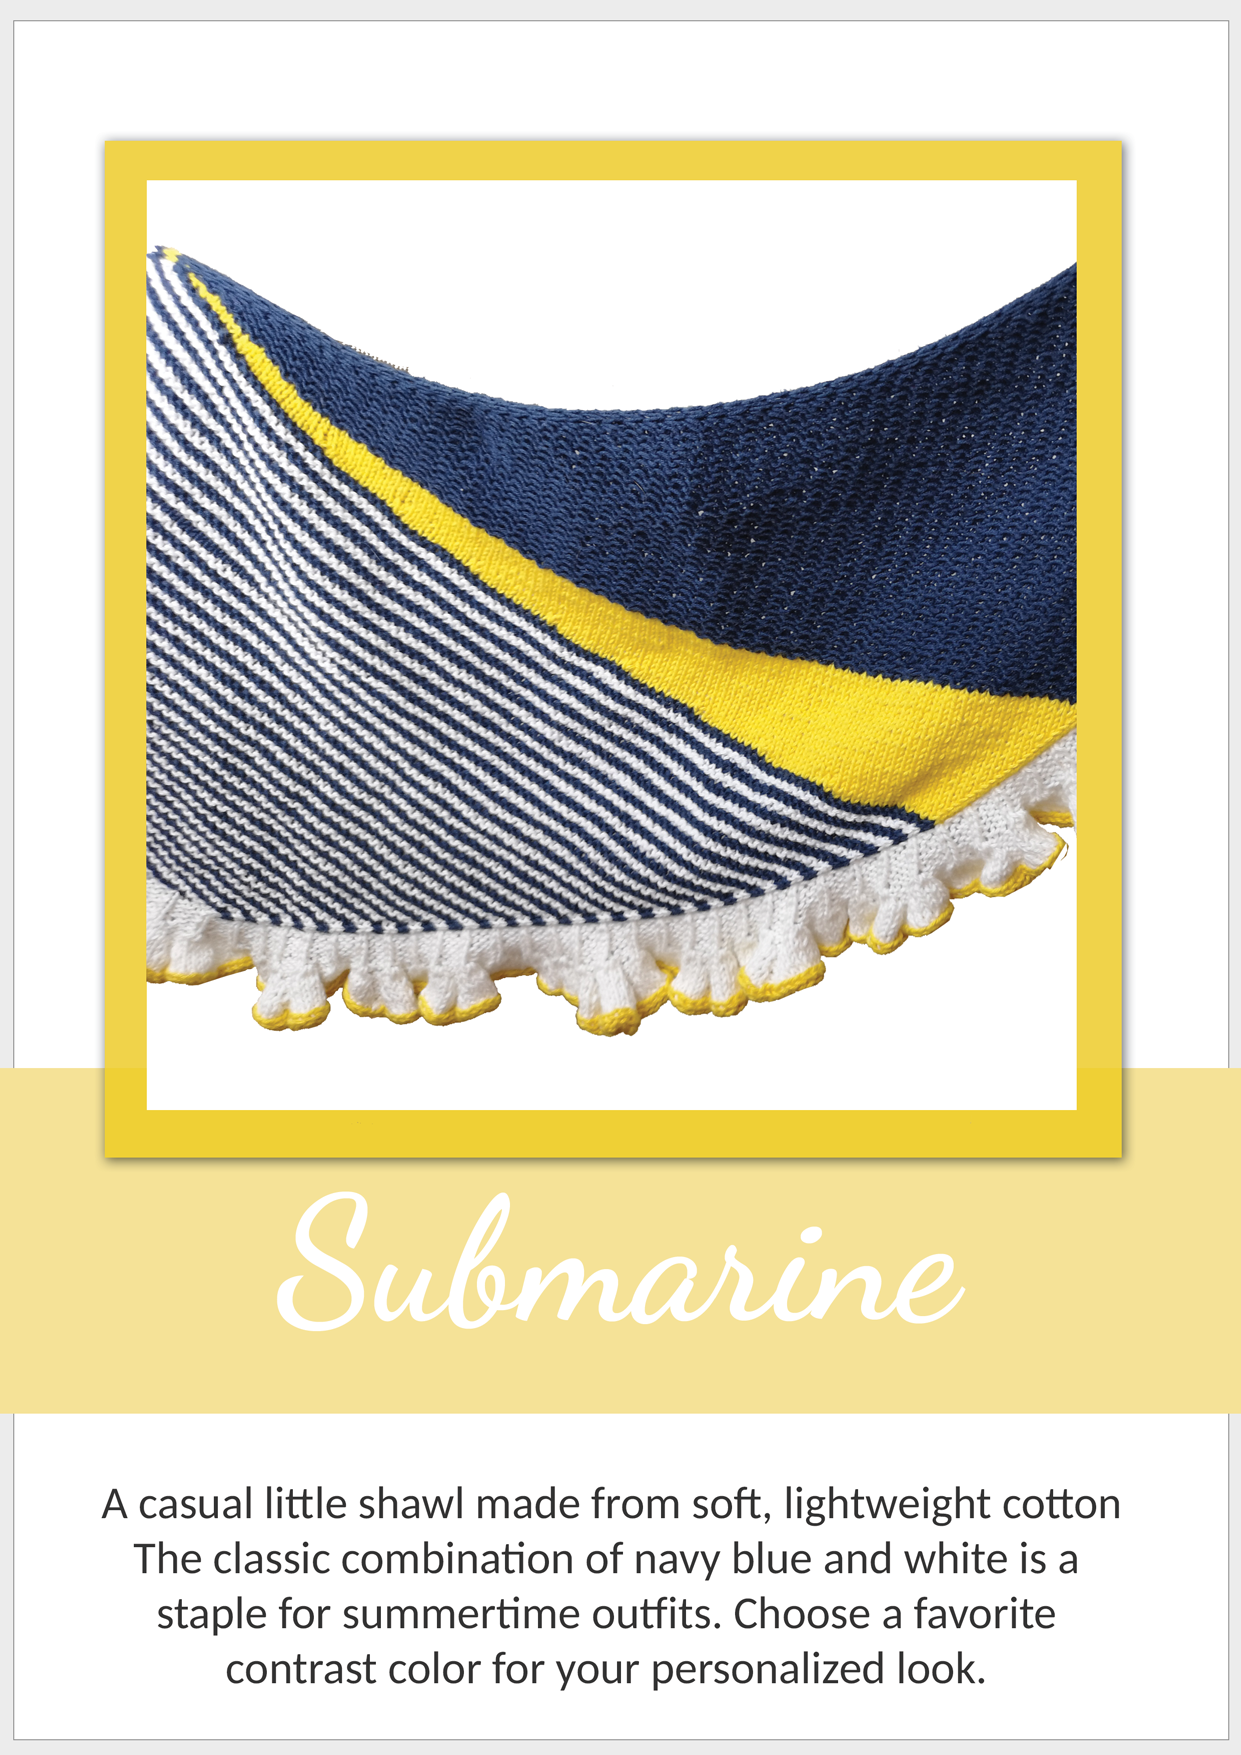 Submarine Shawl